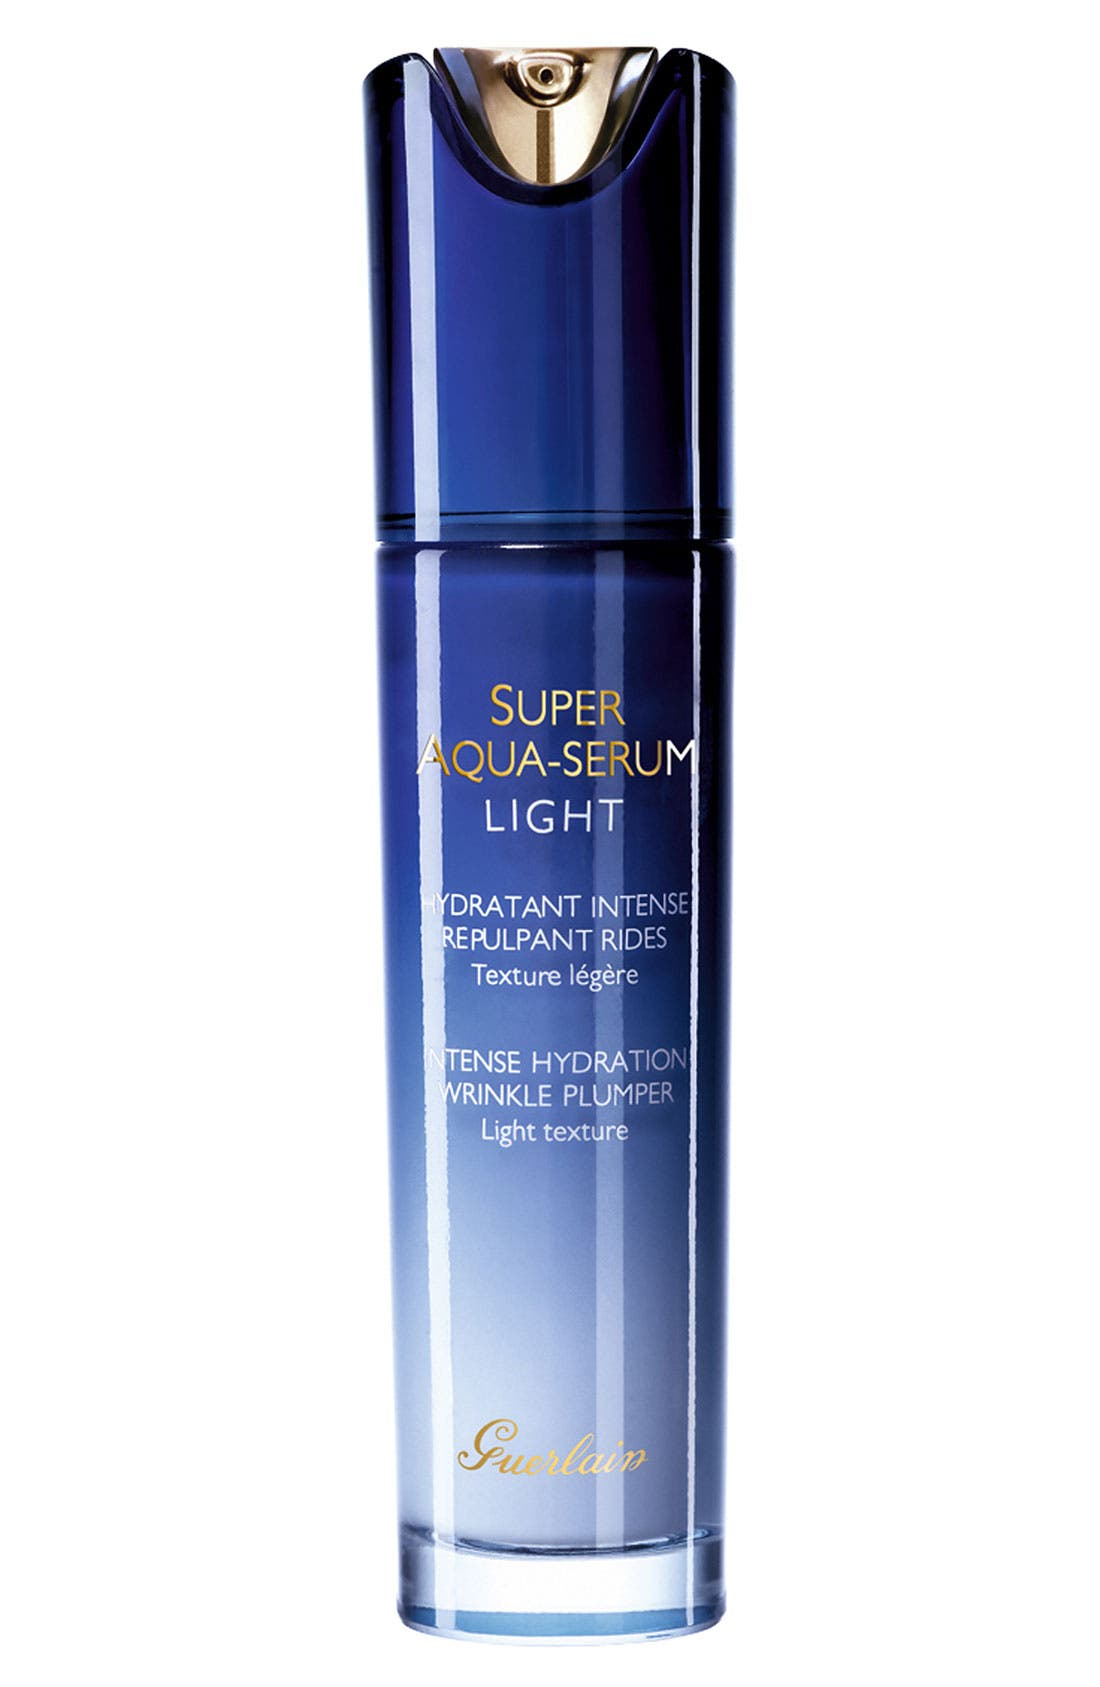 Super Aqua-Serum Light Wrinkle Plumper,                         Main,                         color, NO COLOR